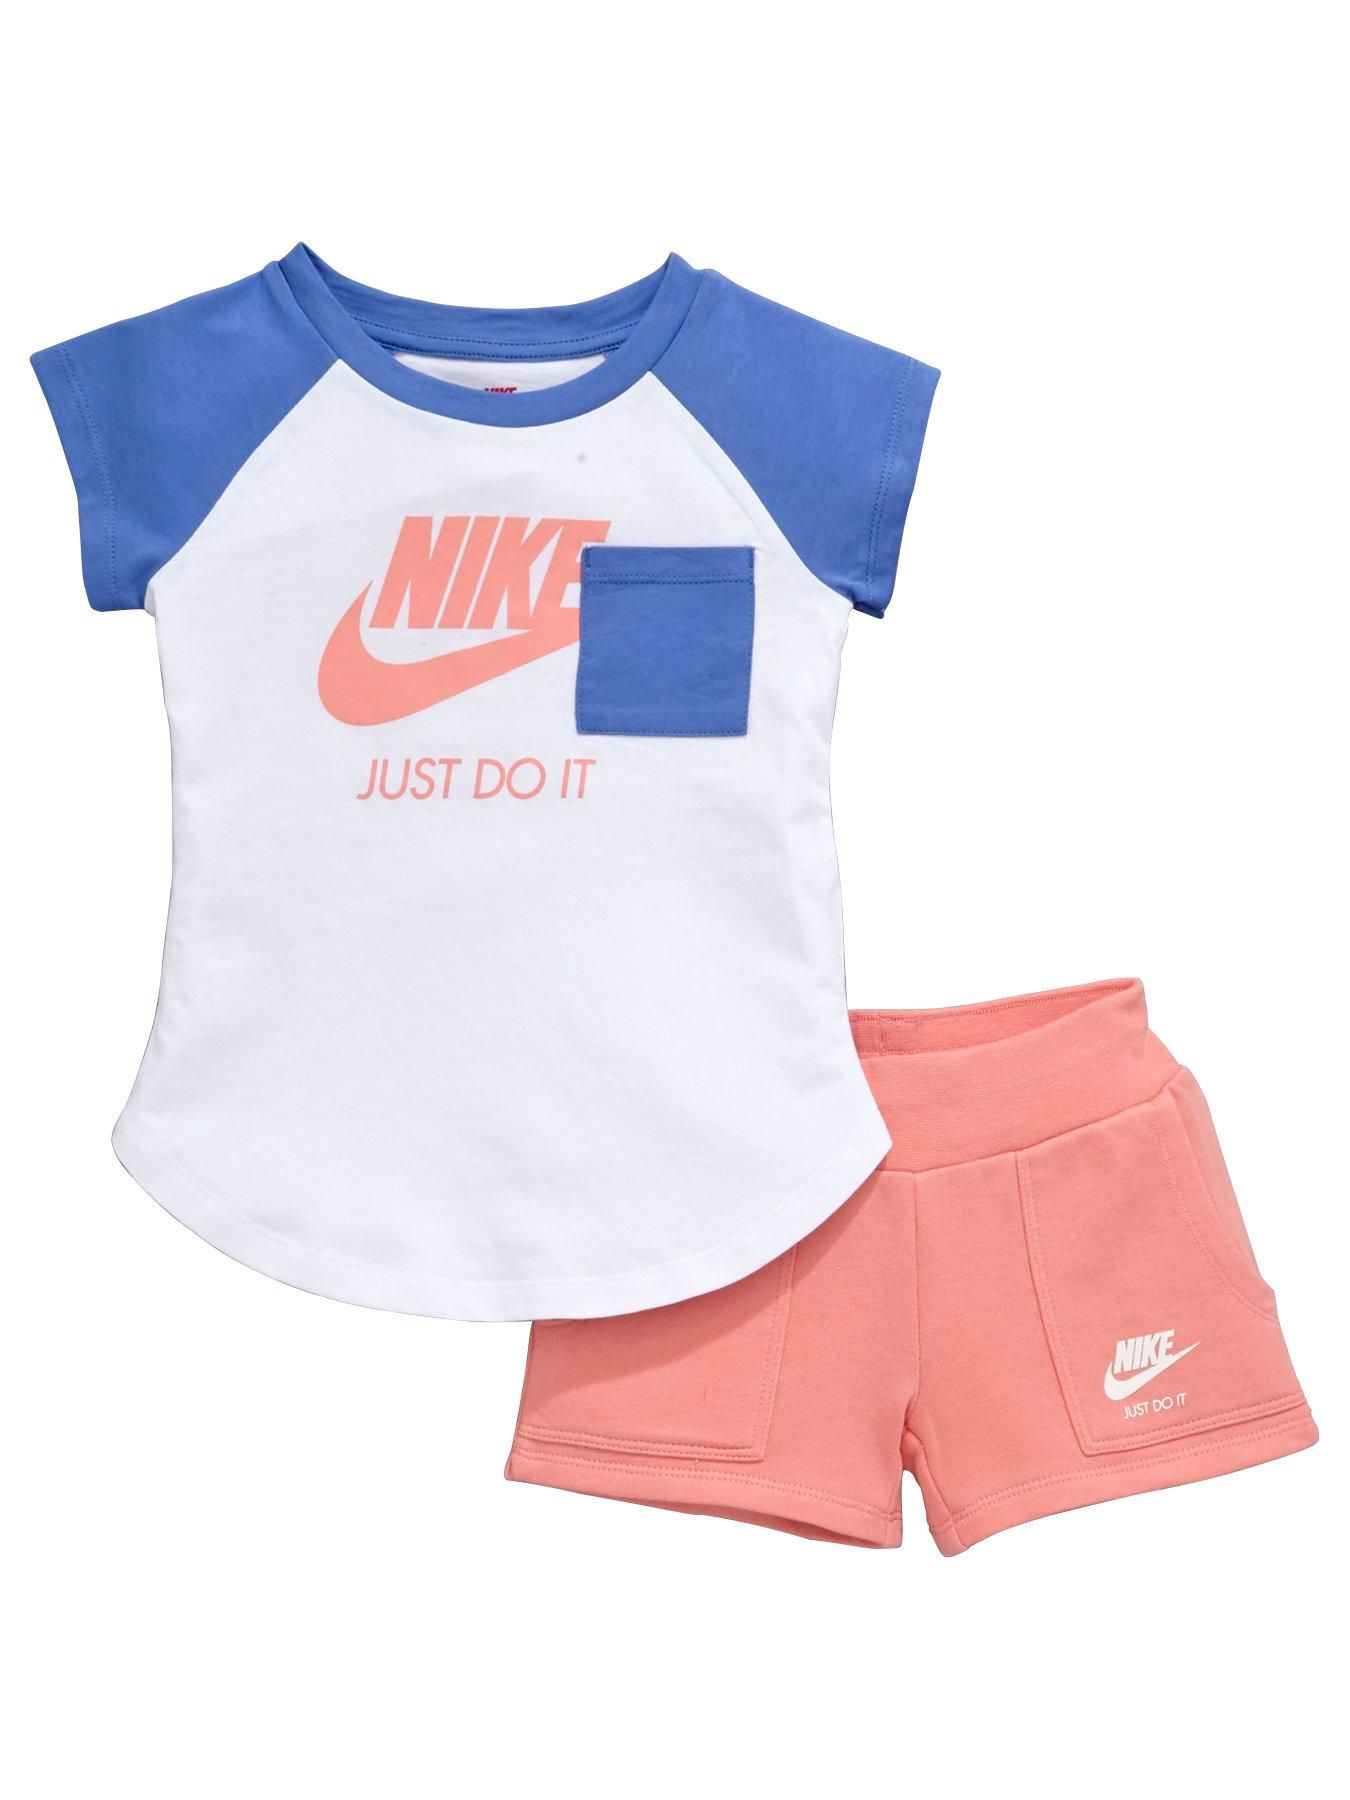 Nike Baby Girl Clothes Cool Washing Instructions Machine Washable100% Cotton  Littlewood Inspiration Design